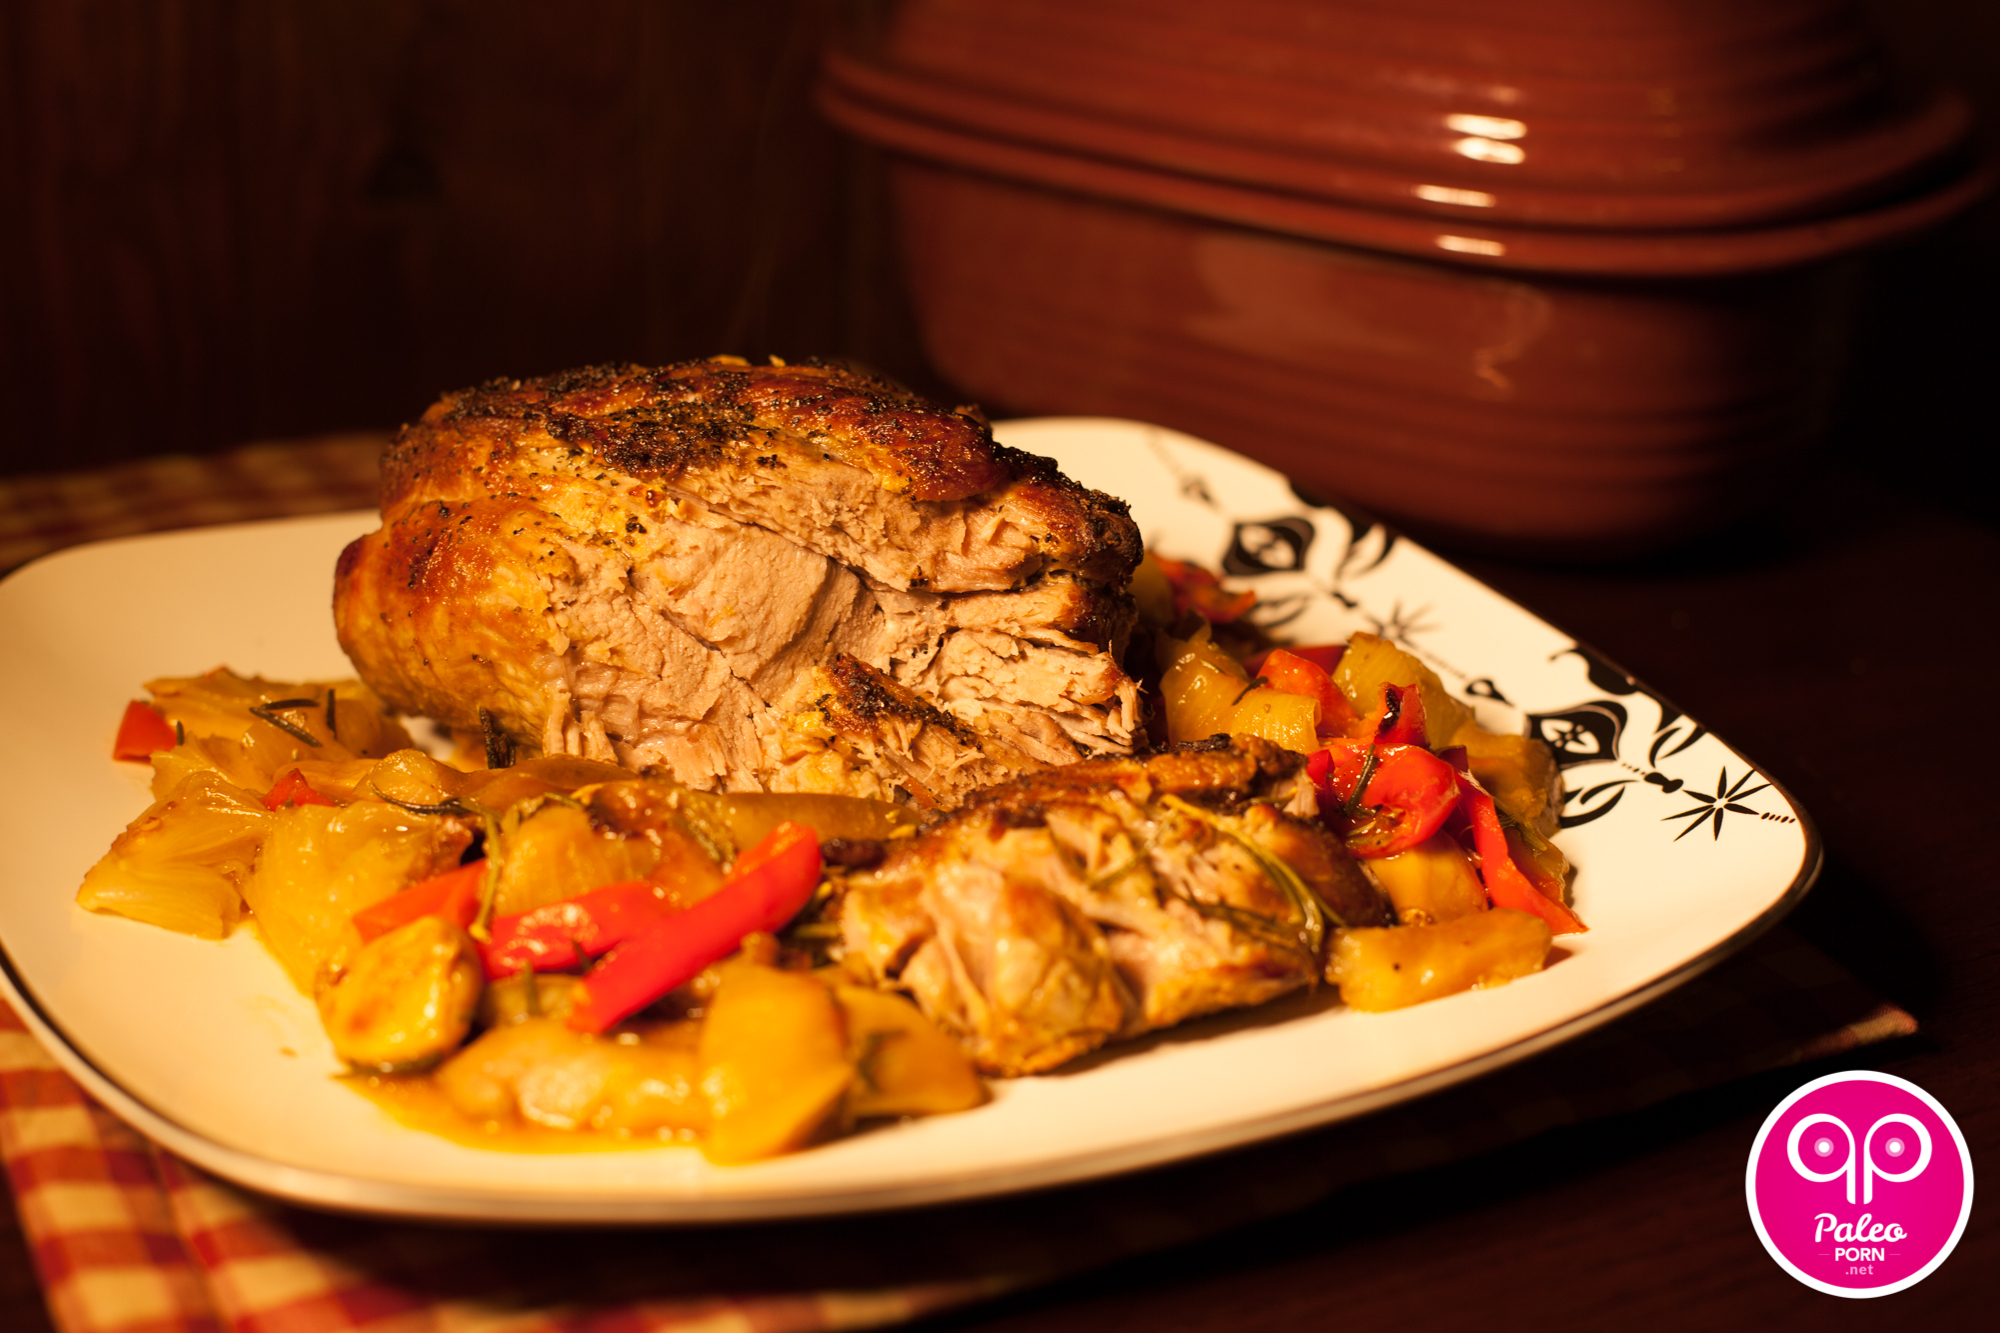 Braised Pork and Pears